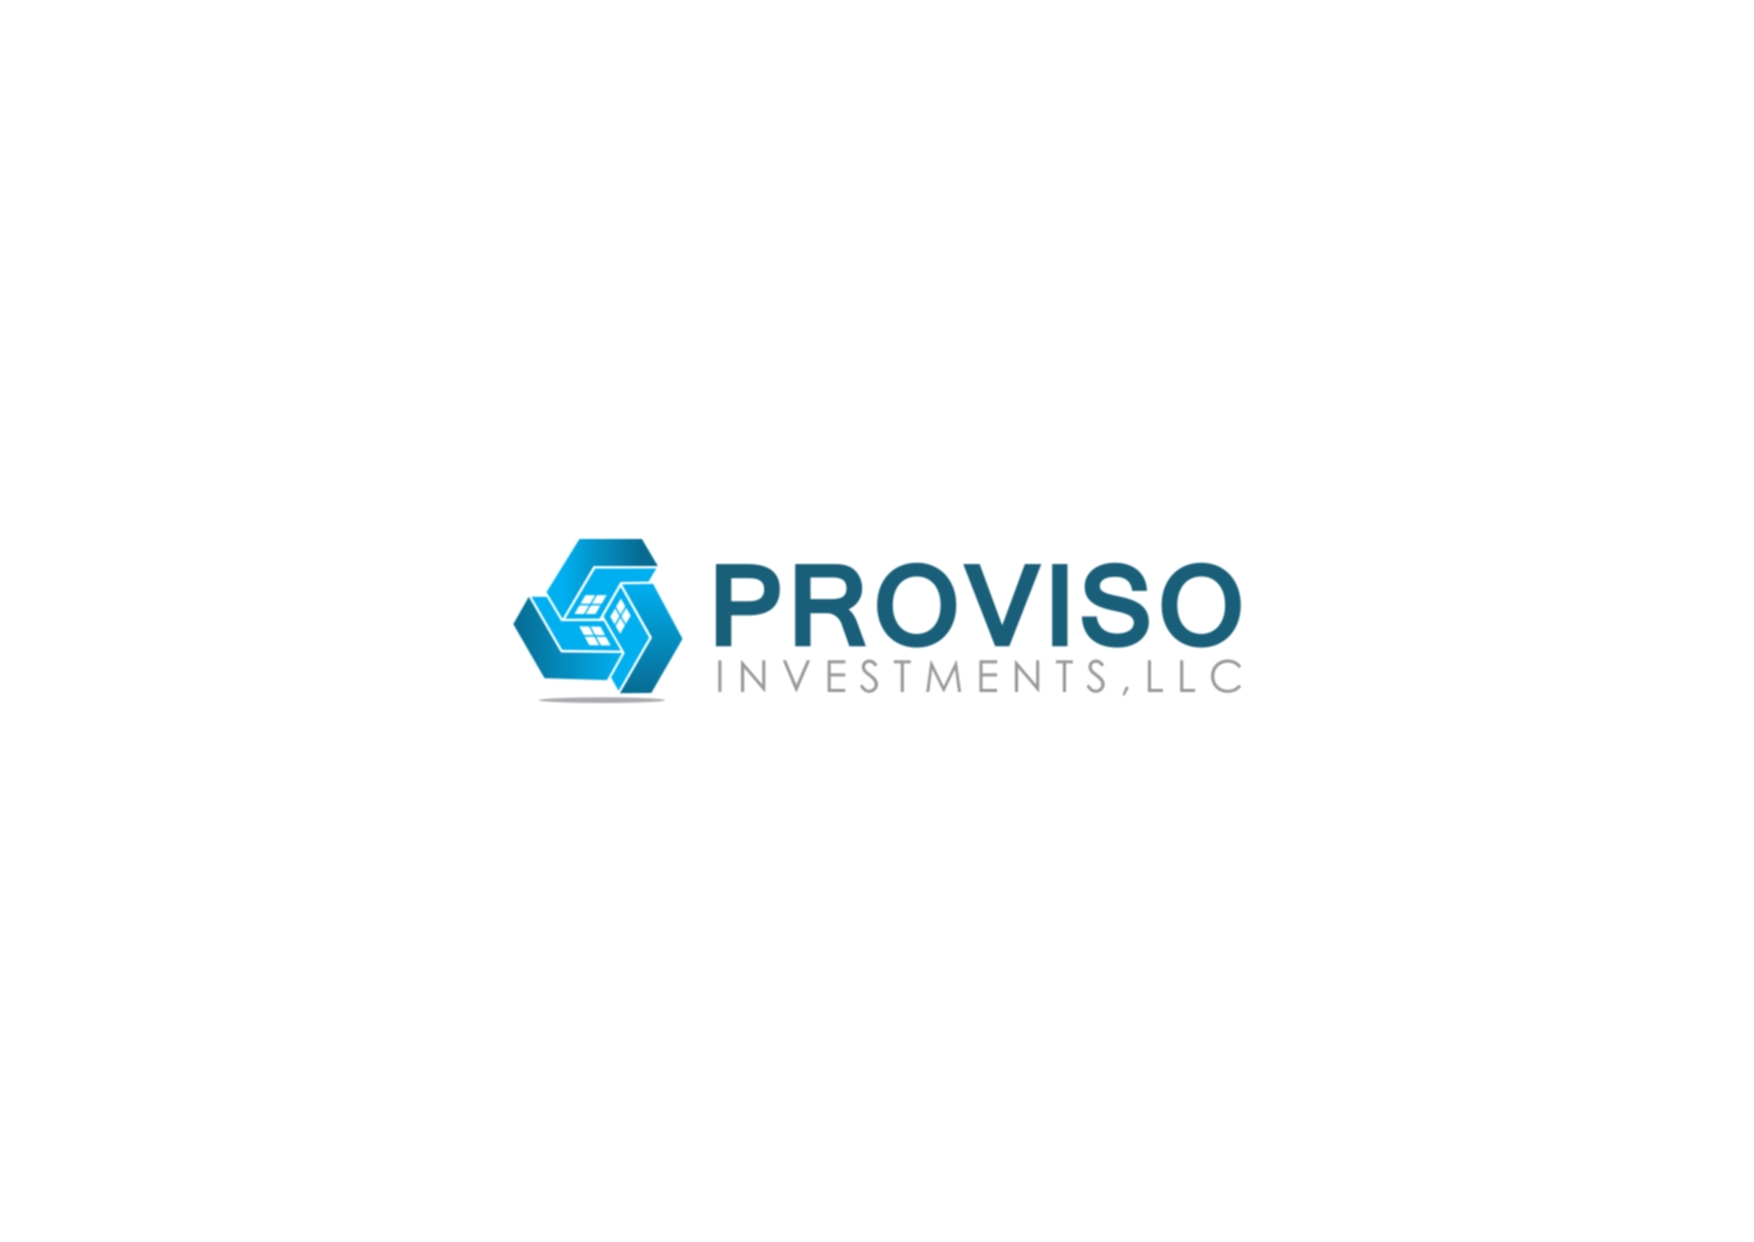 Logo Design by Private User - Entry No. 45 in the Logo Design Contest New Logo Design for PROVISO INVESTMENTS,LLC.